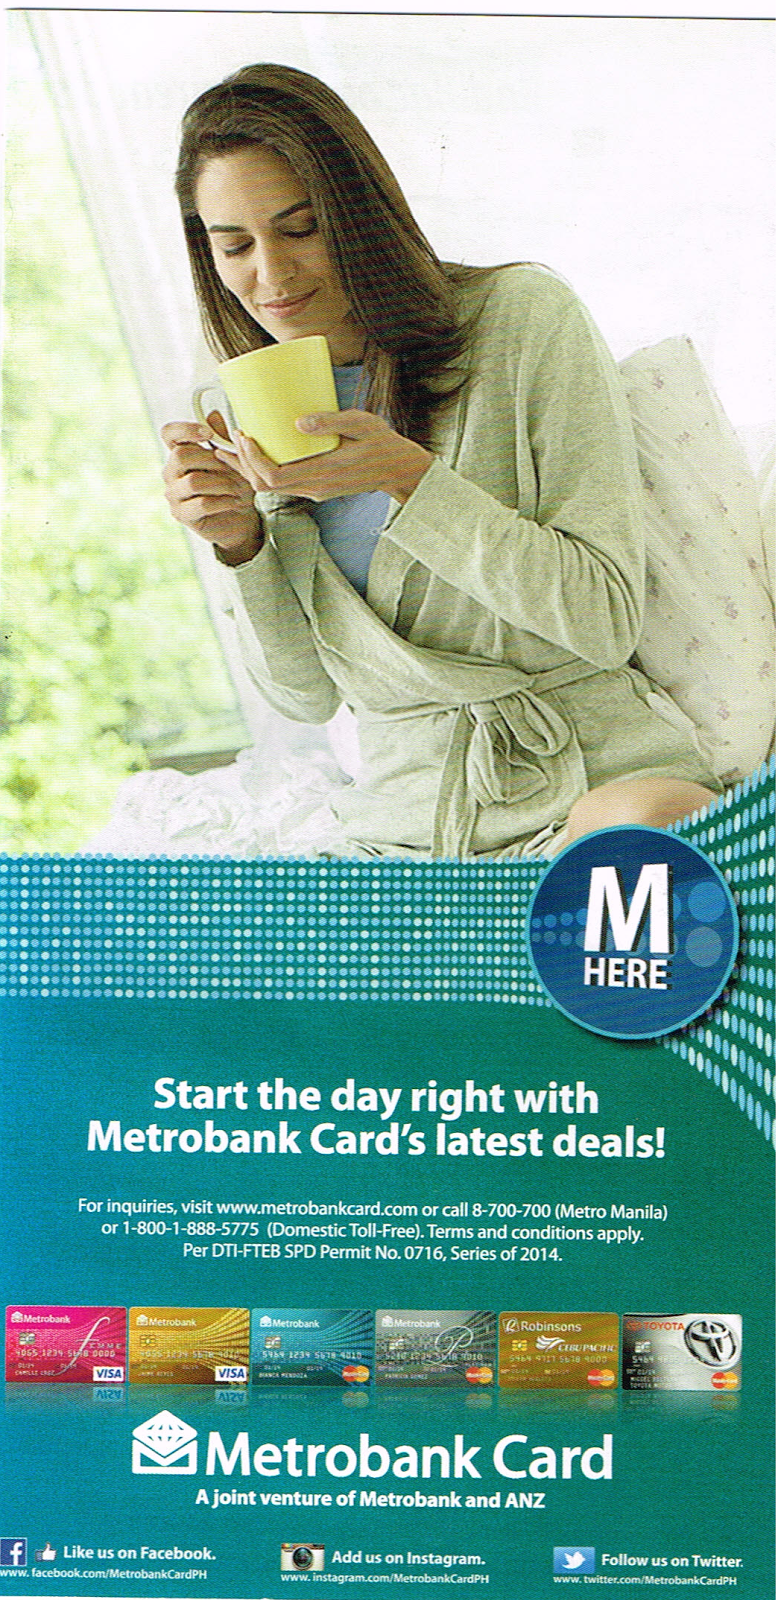 Start the day right with Metrobank Card's latest deals!